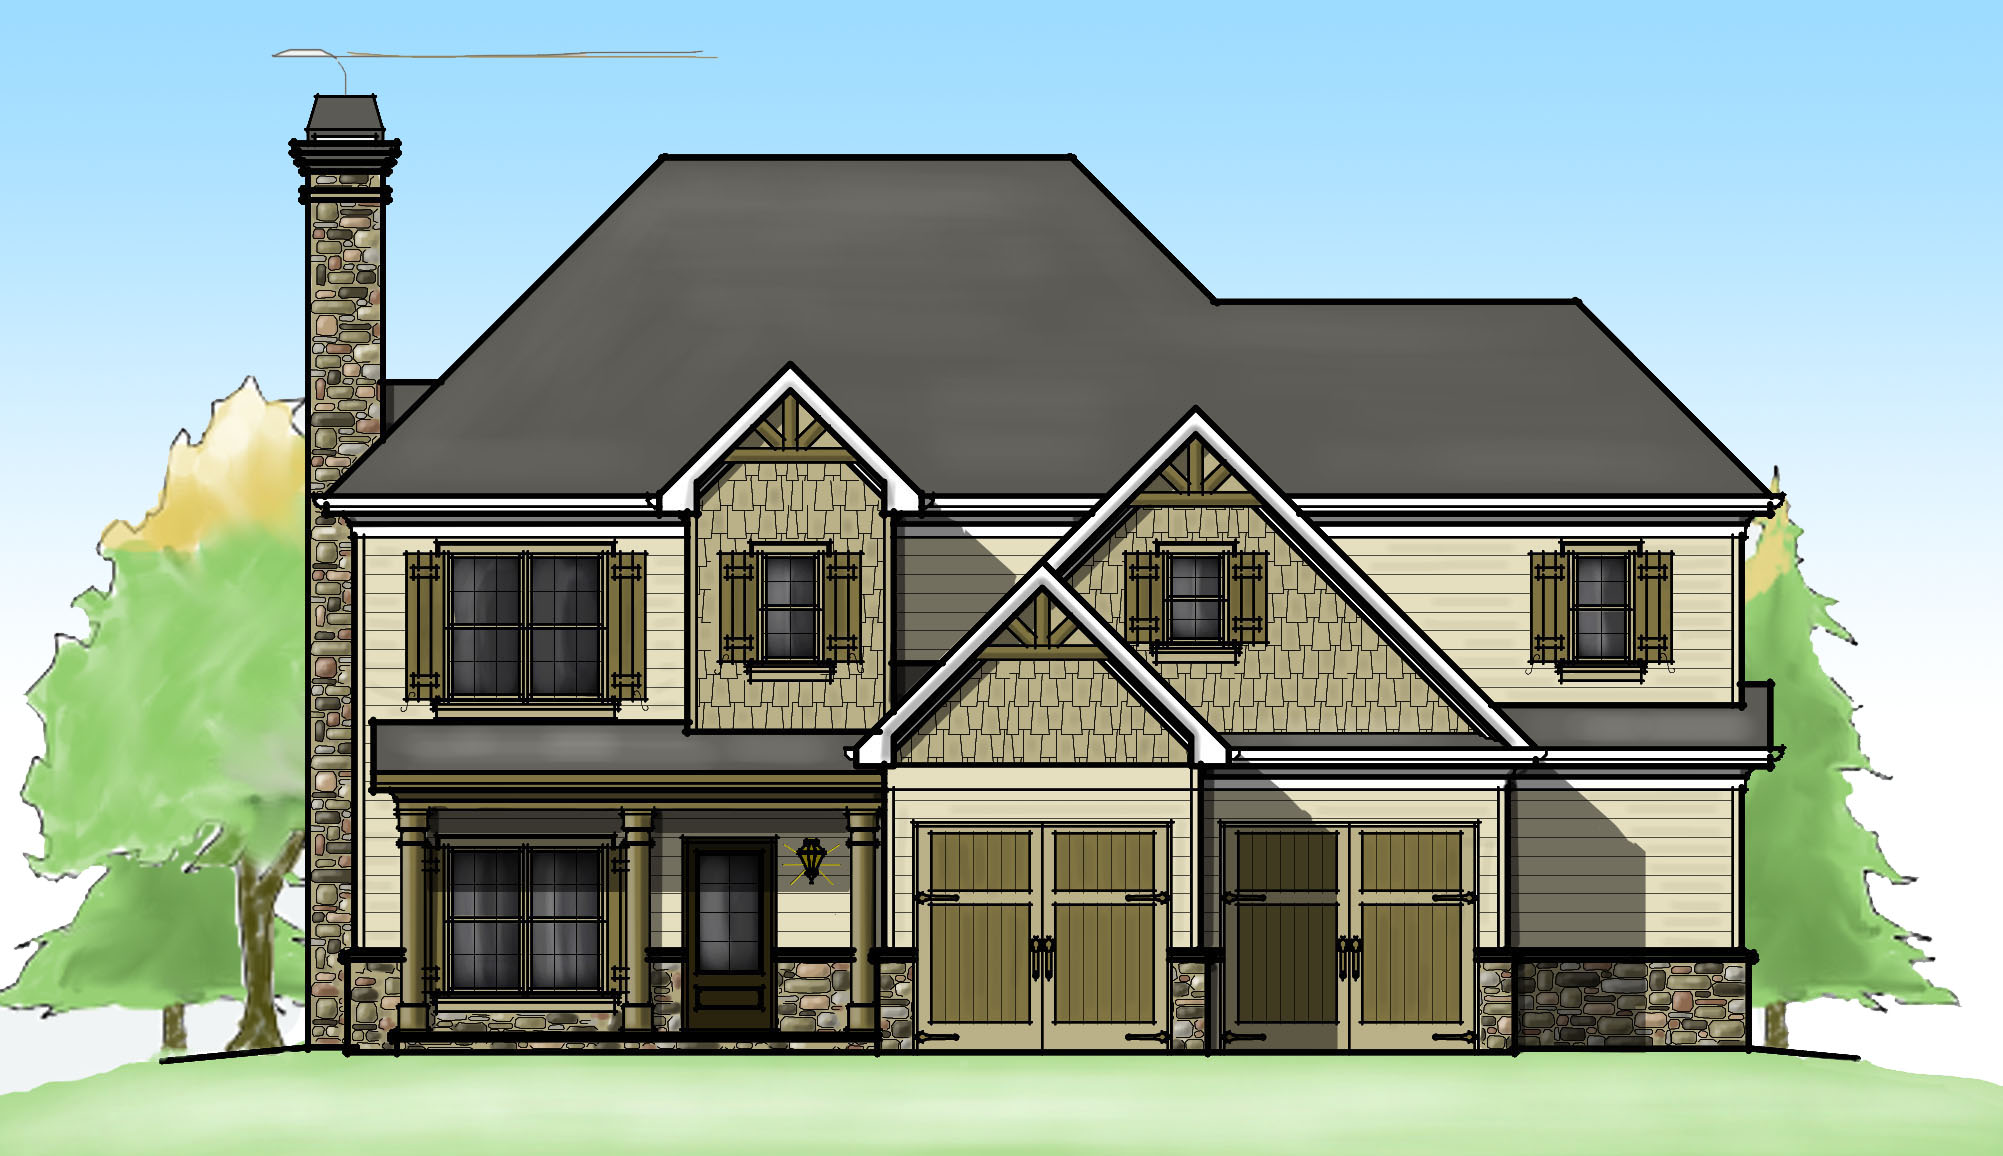 Two garage options 92347mx architectural designs for Architecturaldesigns com house plan 56364sm asp